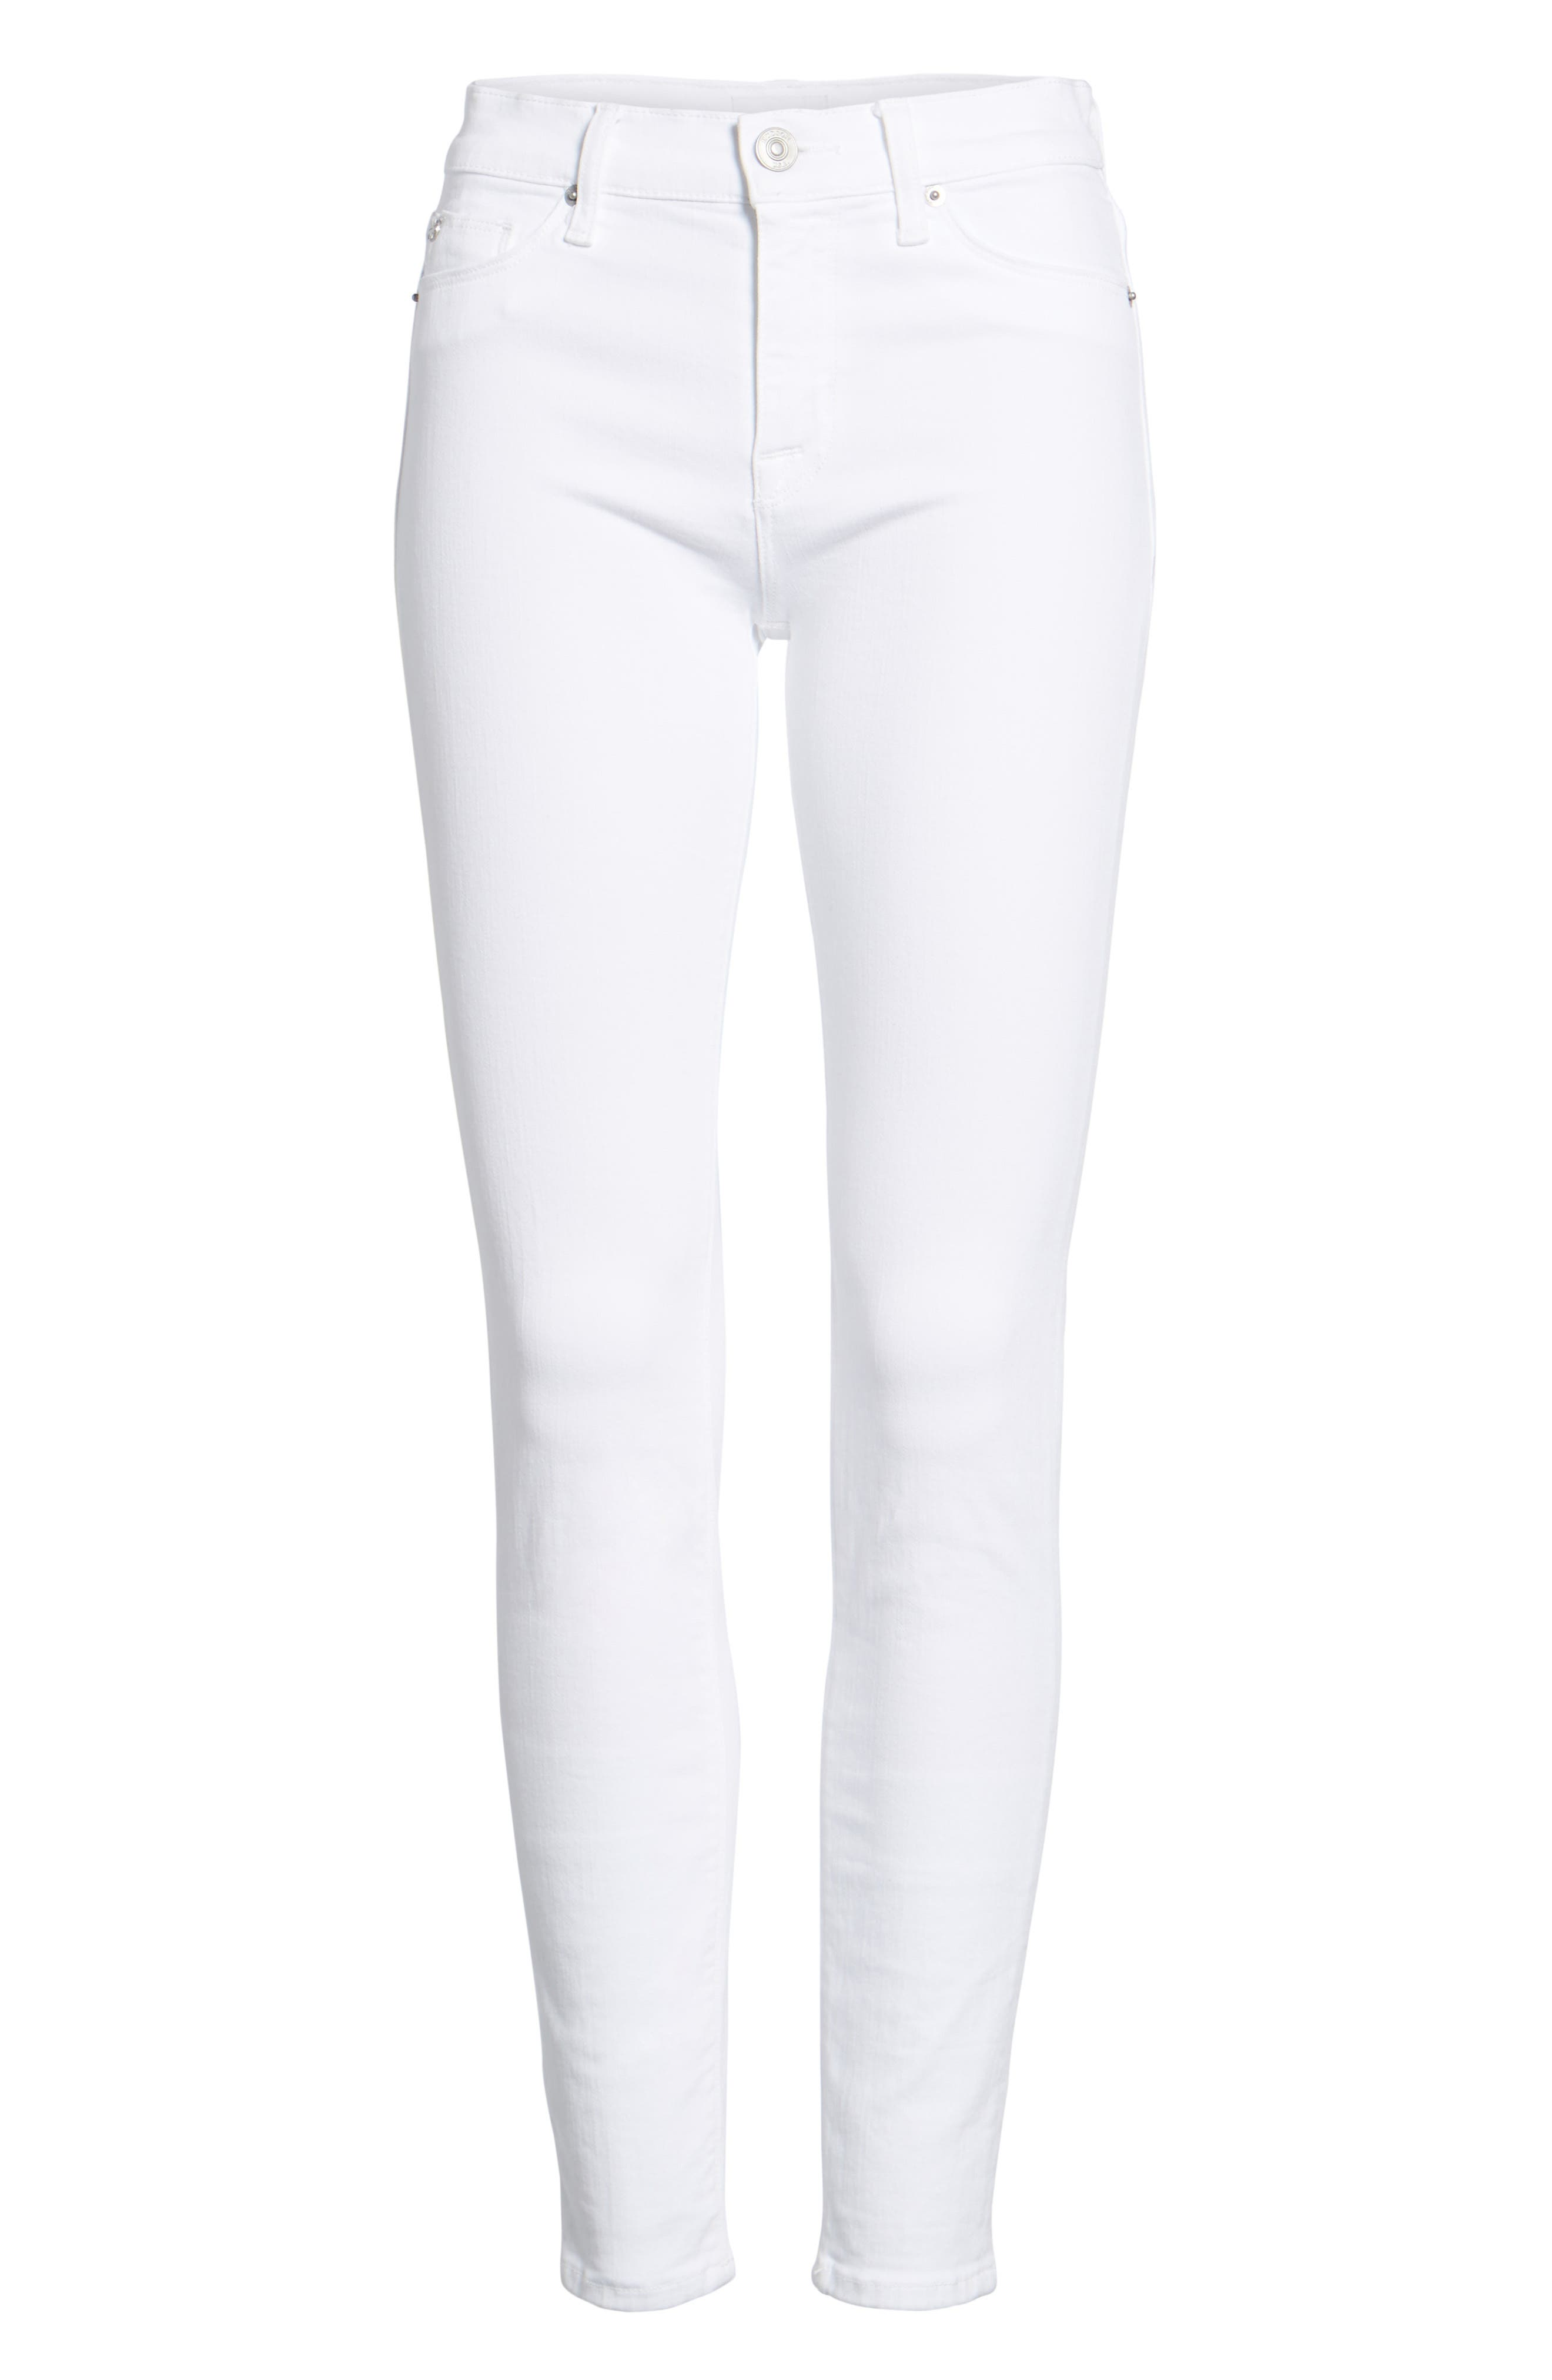 Nico Ankle Super Skinny Jeans,                             Alternate thumbnail 7, color,                             Optical White